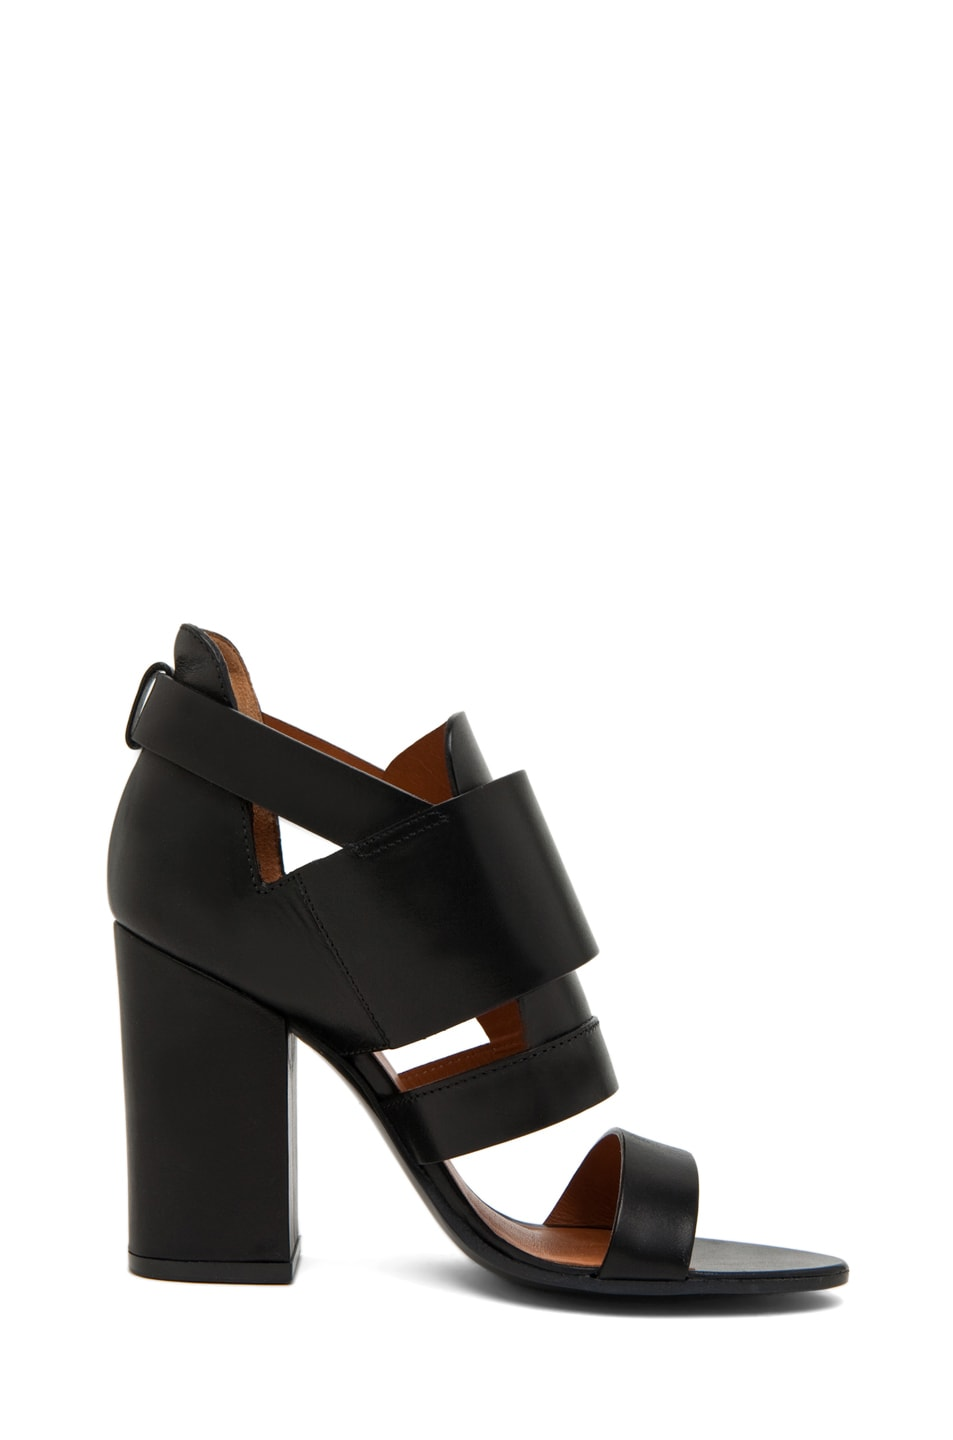 Image 5 of GIVENCHY Vittorias Heel in Black